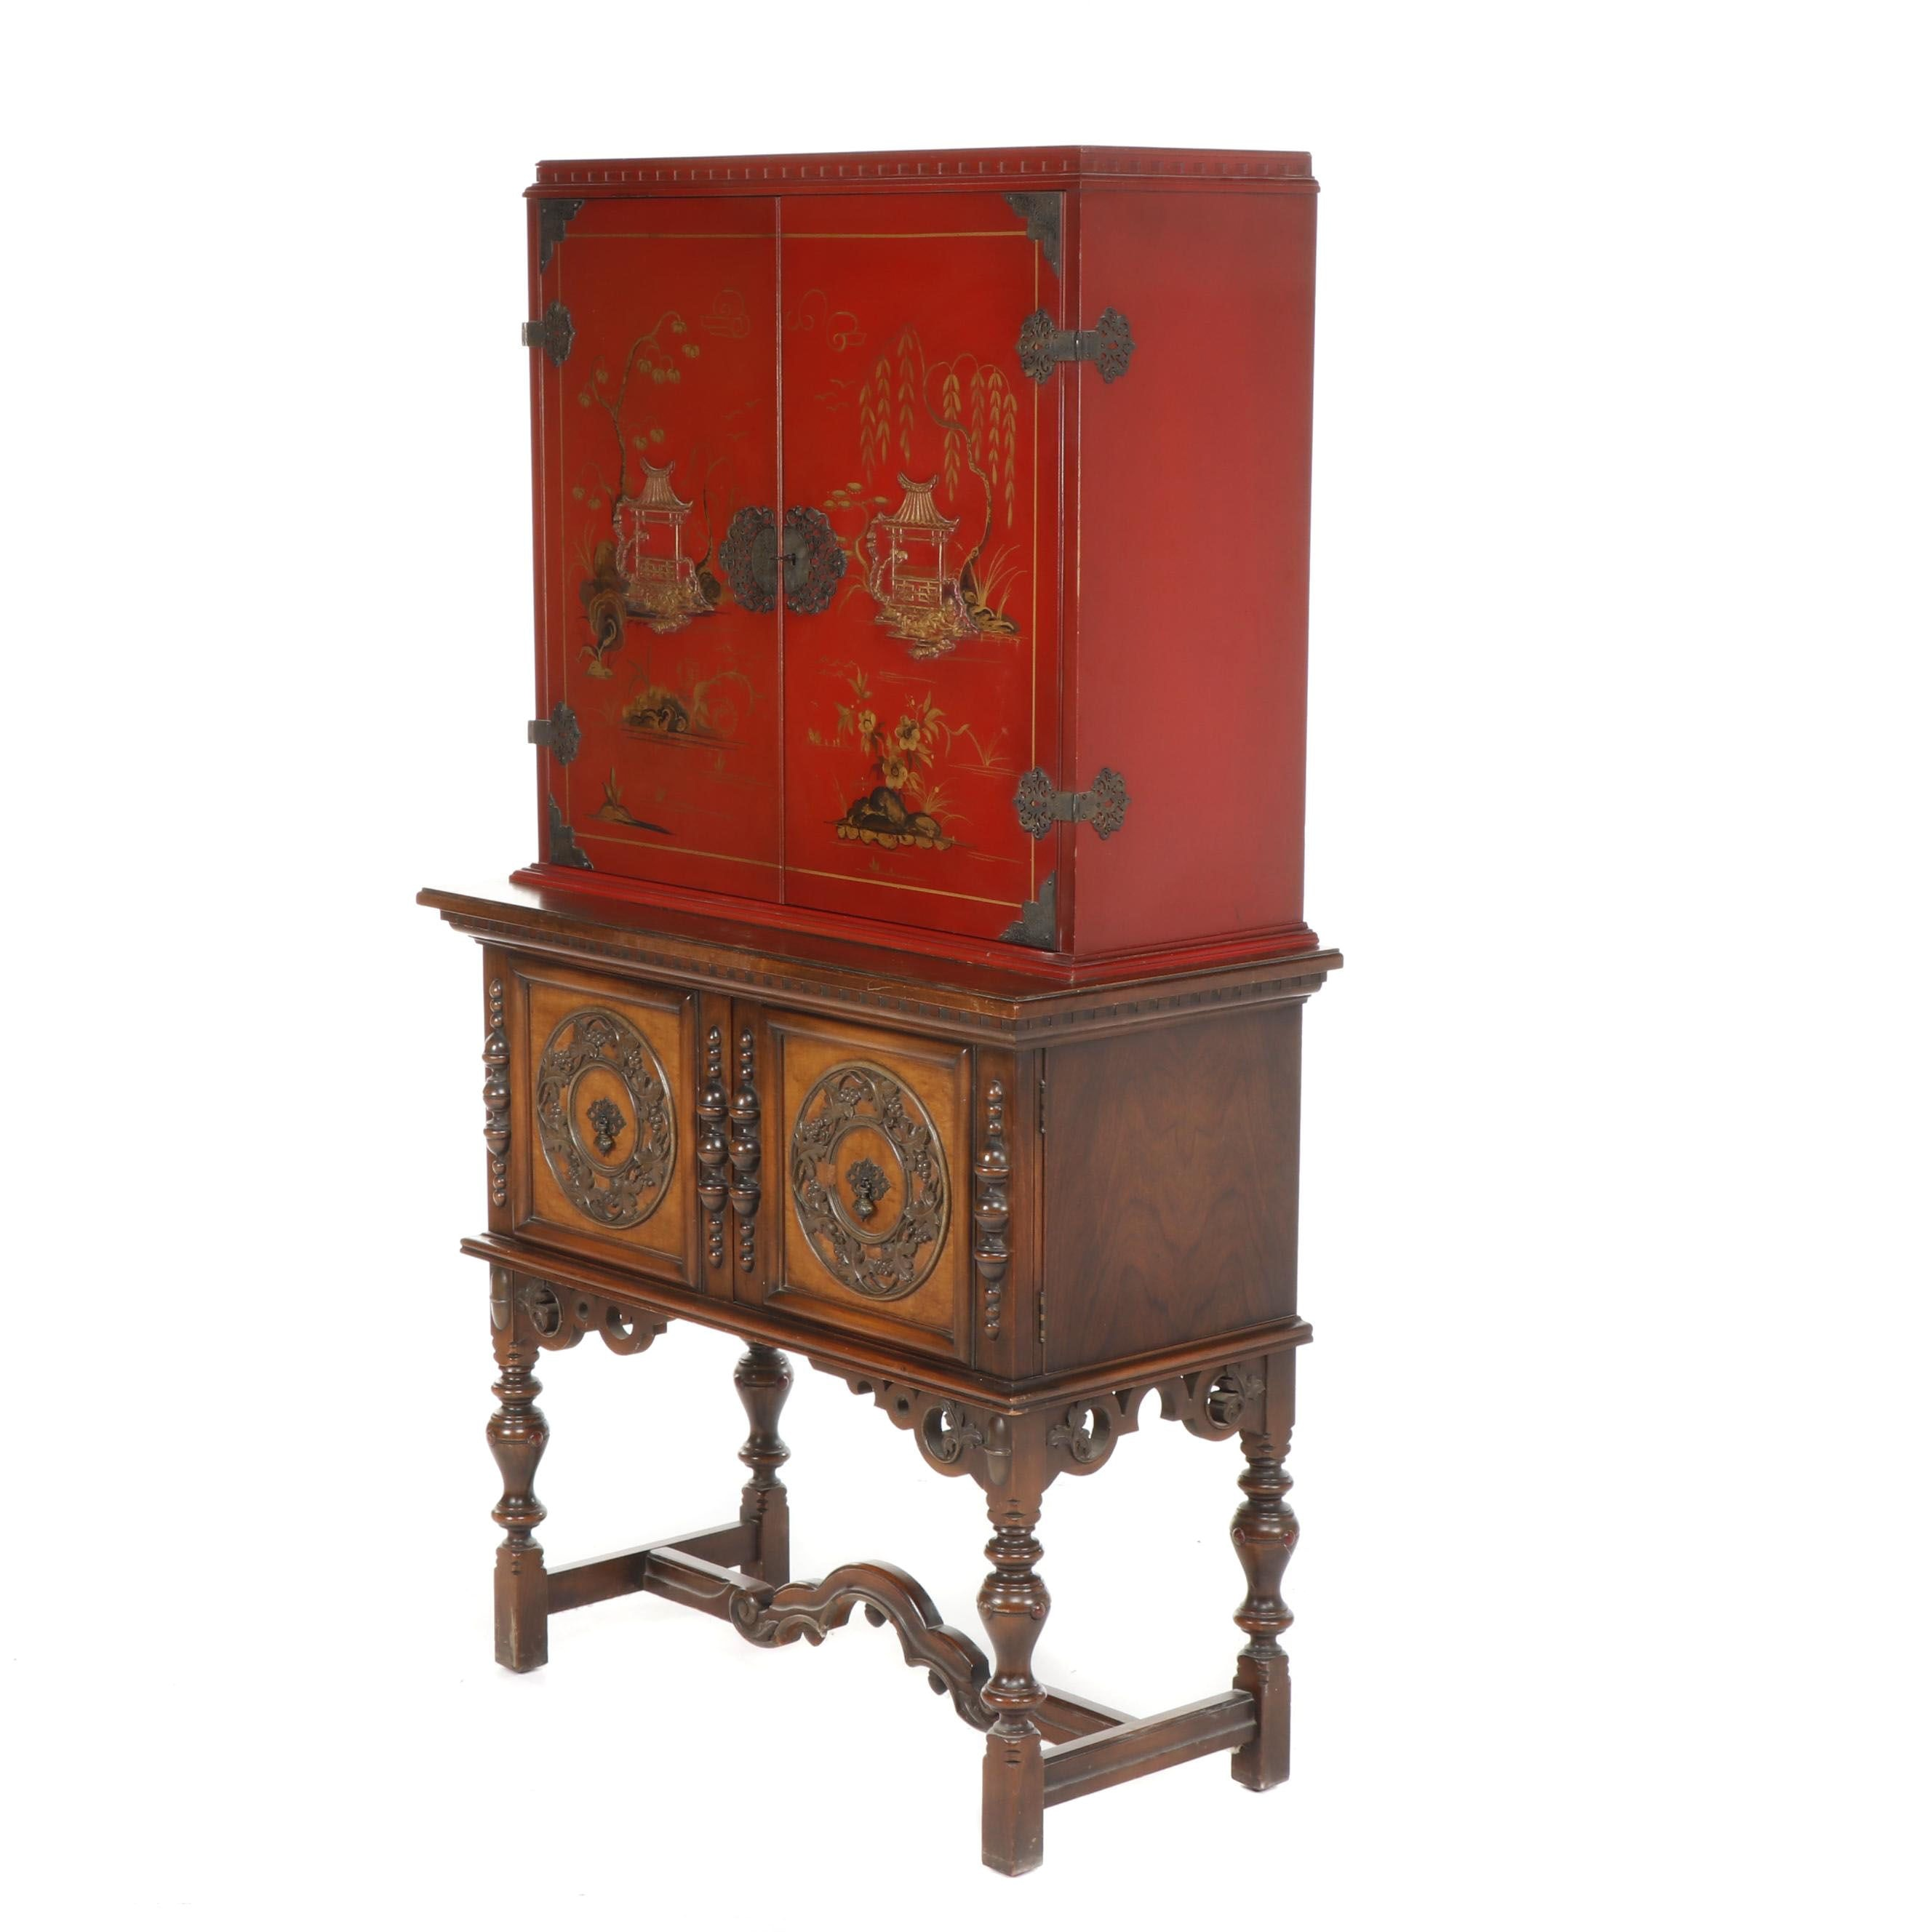 Chinoiserie Hand-Painted Wood Case on William and Mary Style Walnut Base, 20th C